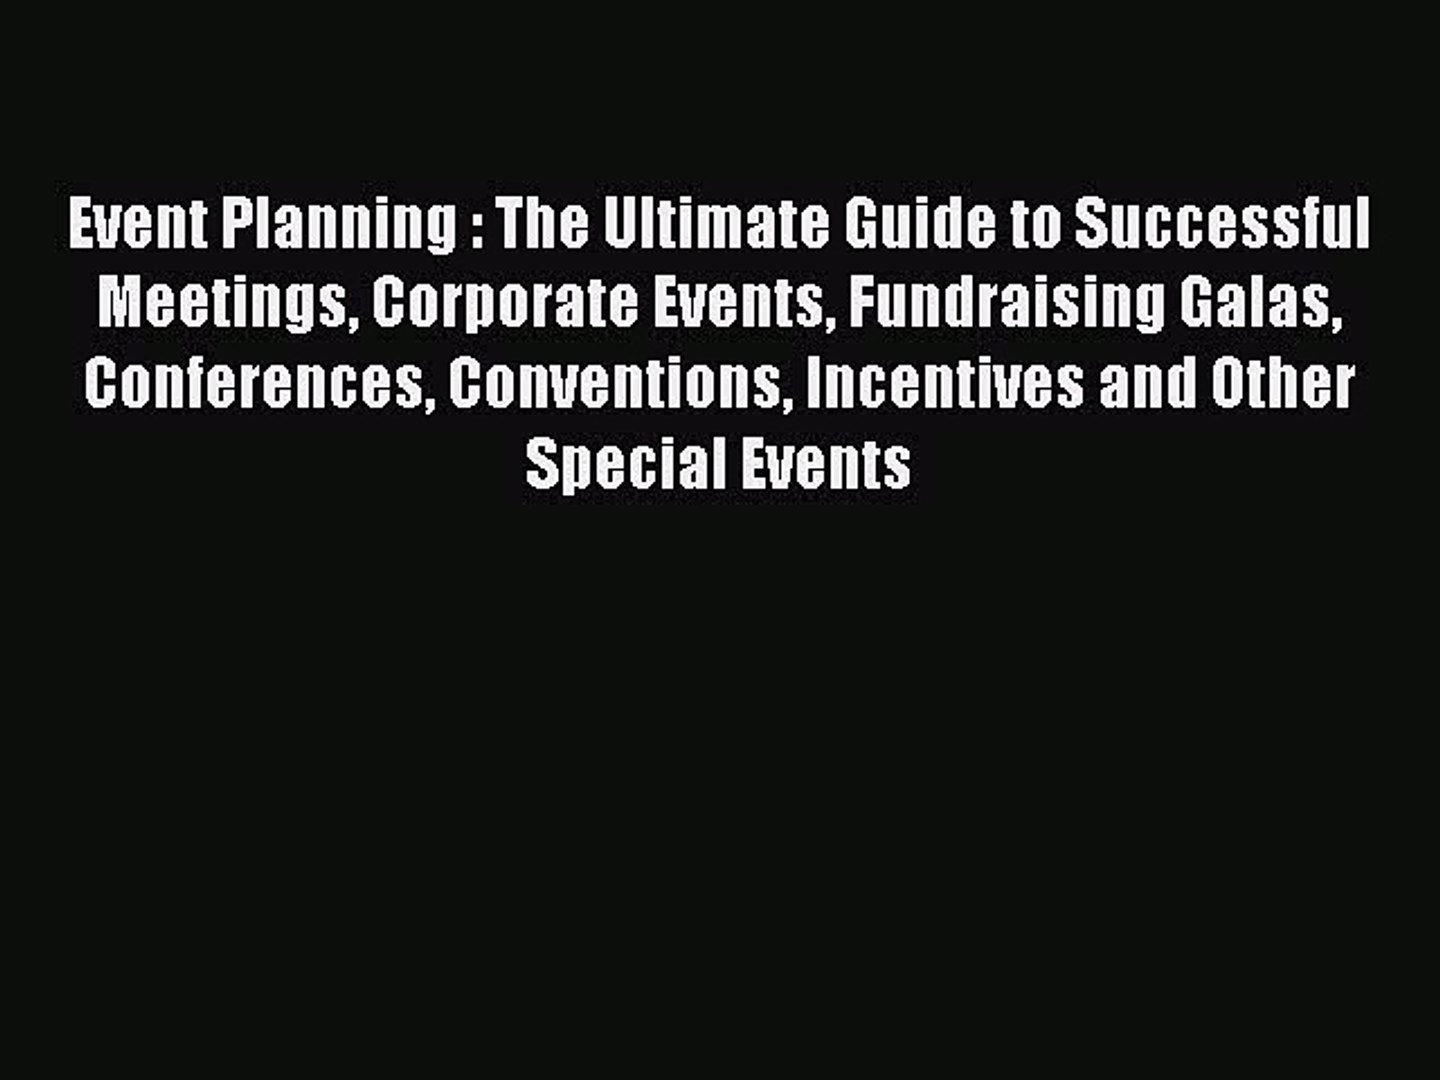 [Read book] Event Planning : The Ultimate Guide to Successful Meetings Corporate Events Fundraising